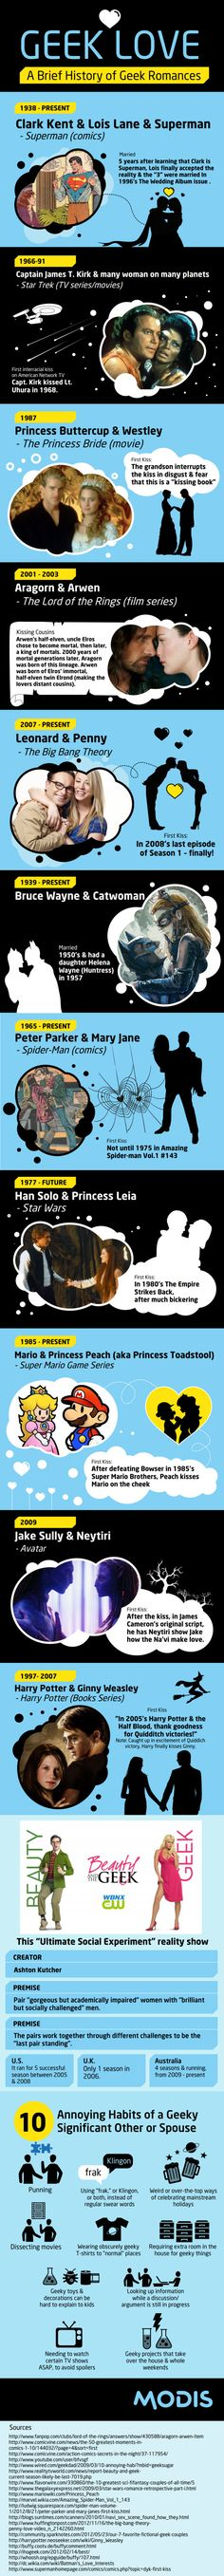 Geeks are known for their brains, but they really should be known for their hearts. After all, some of the most famous romances in history were created, inspired and even celebrated by geeks.